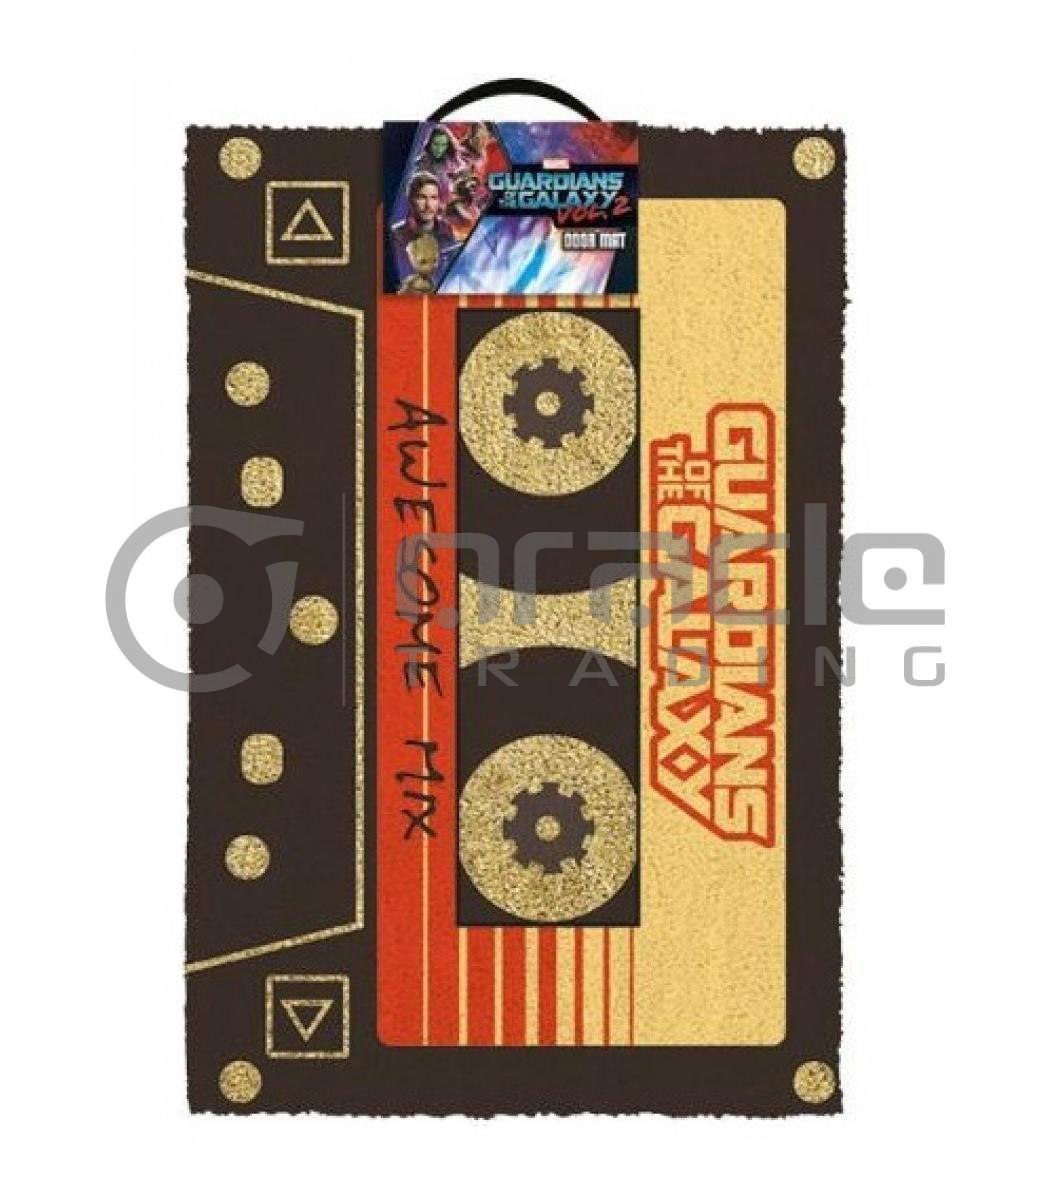 Guardians of the Galaxy Doormat (Awesome Mix)